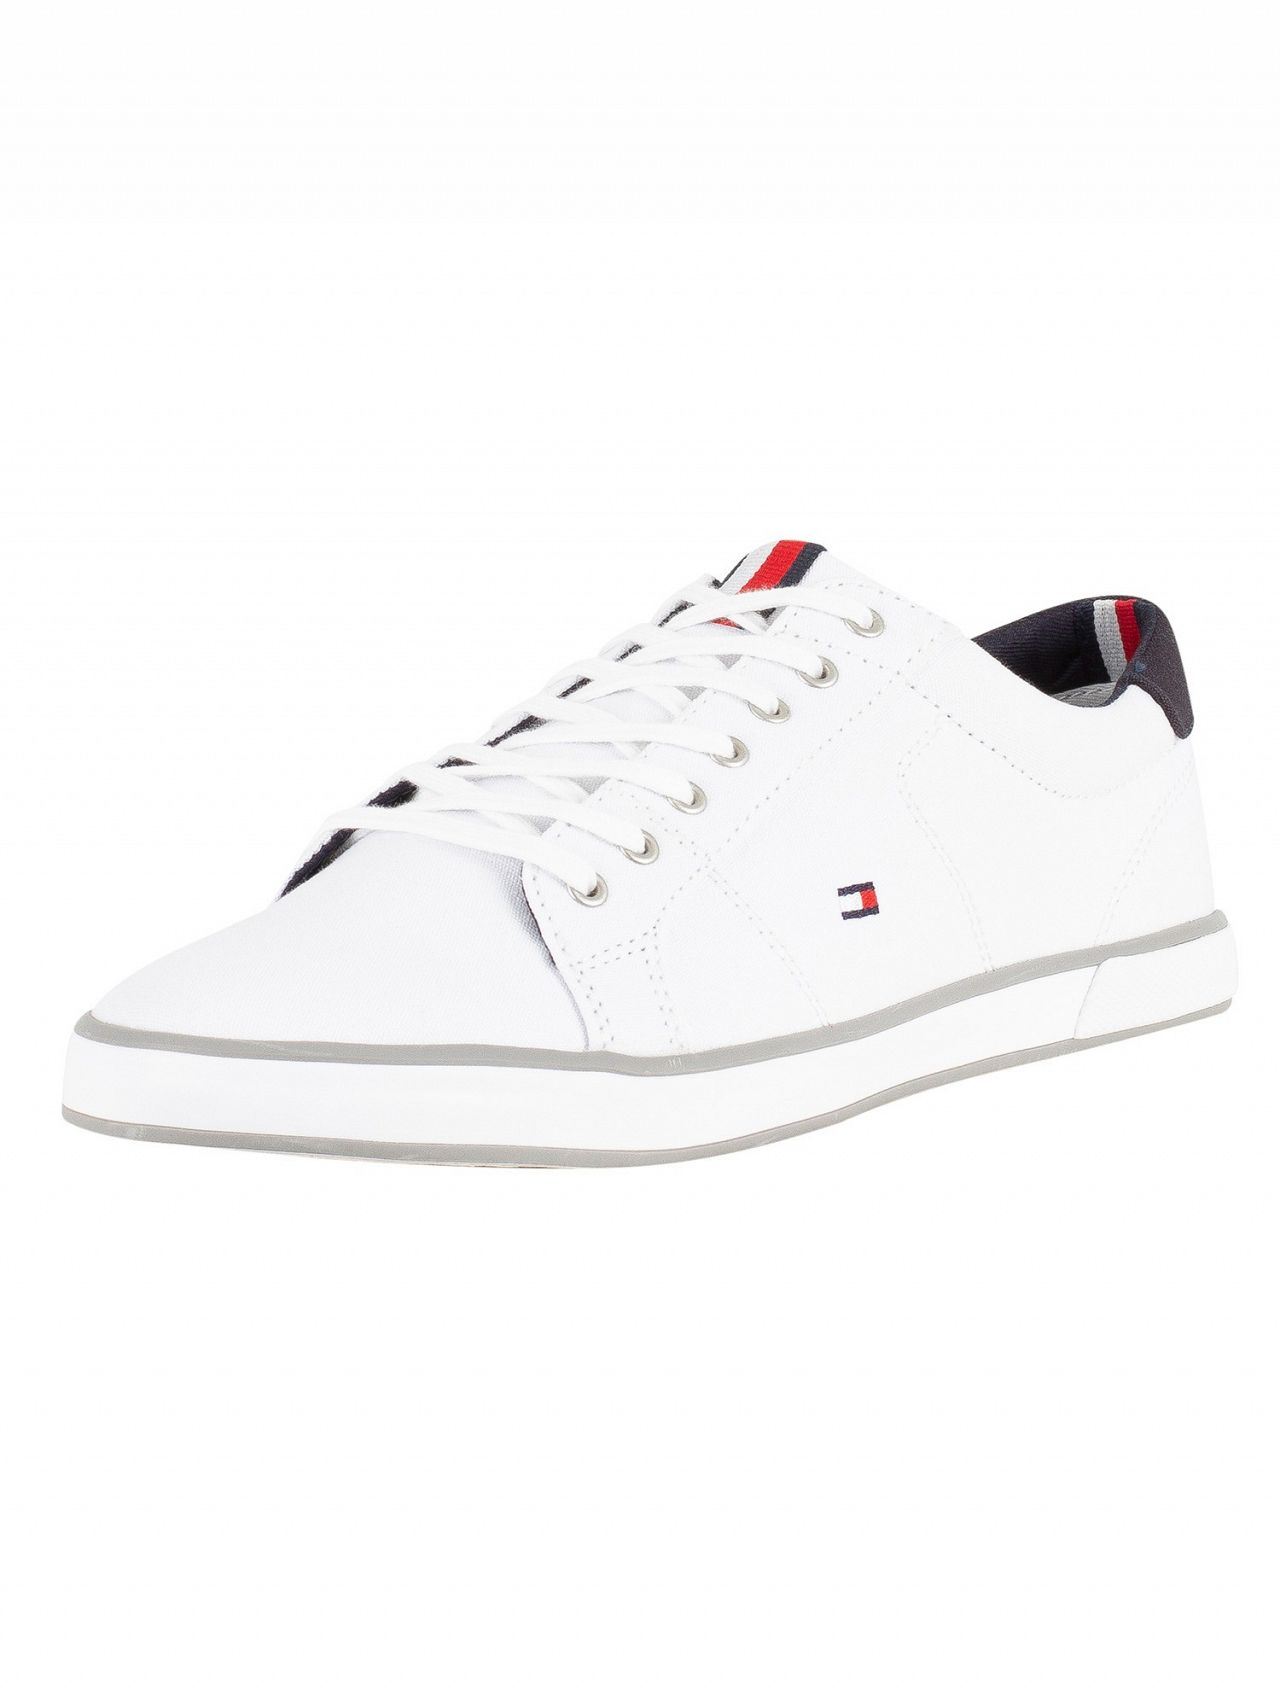 64fbfbfe95dbdb Tommy Hilfiger White Flag Trainers. Tap to expand